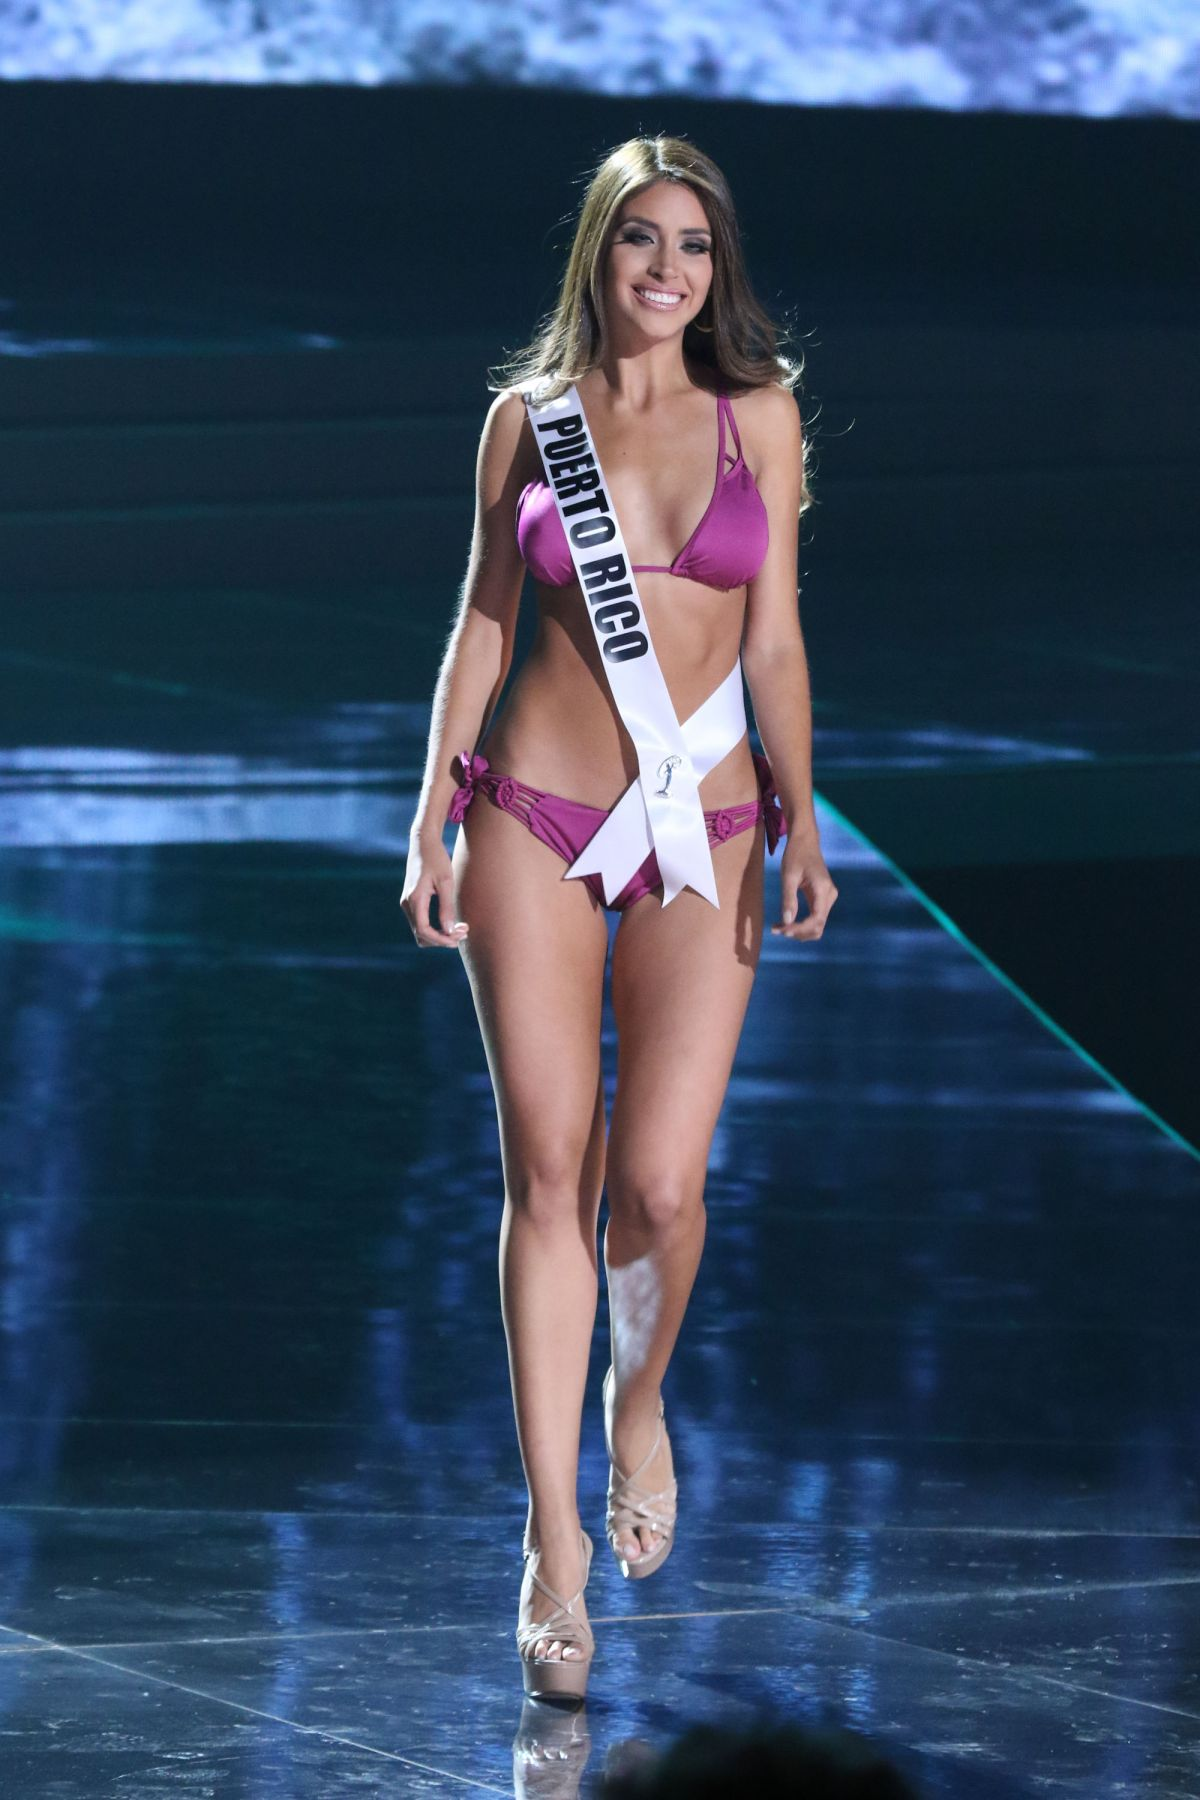 CATALINA MORALES - Miss Universe 2015 pPreliminary Round 12/16/2015